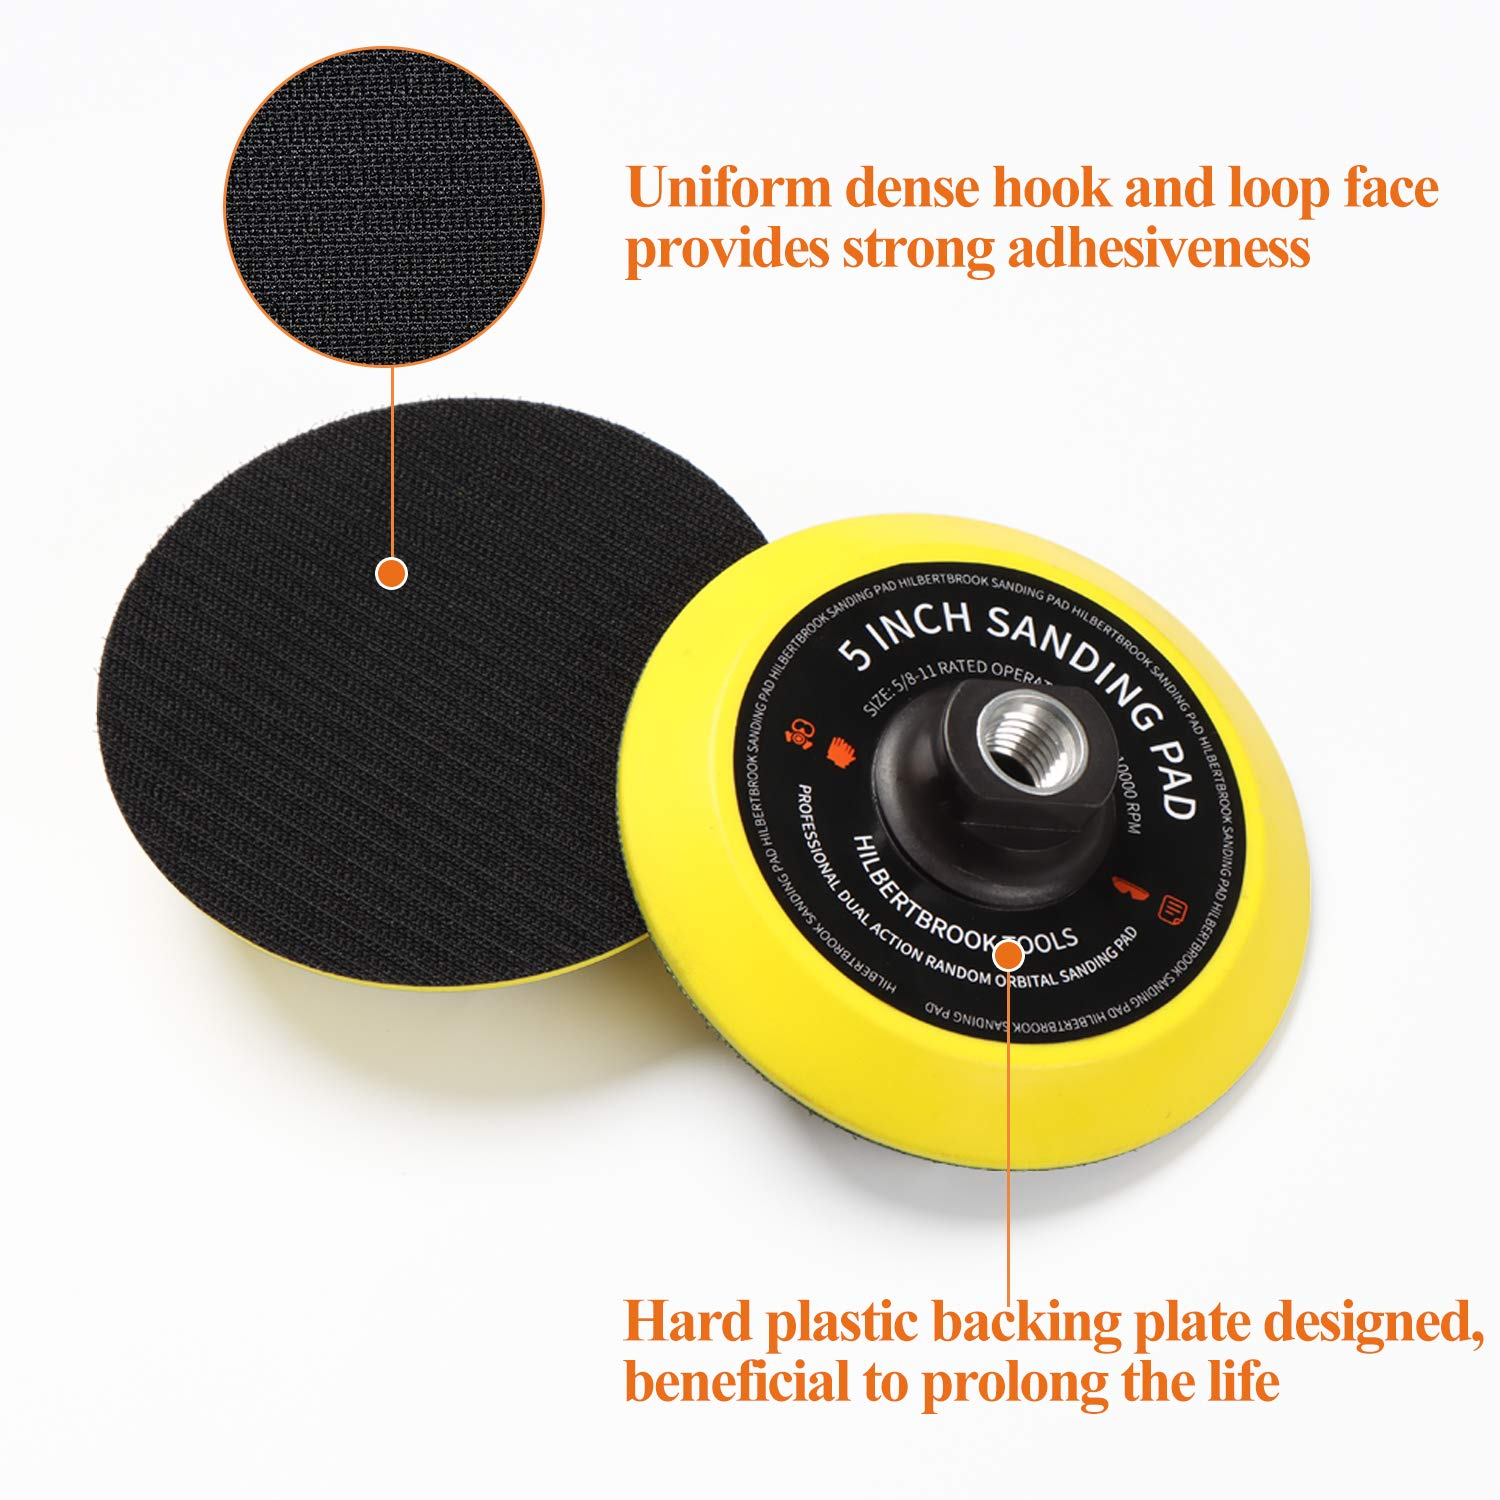 1 Wood Carving Shaping Sanding 5 Inch Hook and Loop Backing Pad Backing Plate with 5//8-11 Threads Sanding Pad for Angle Grinder Carving Polishing